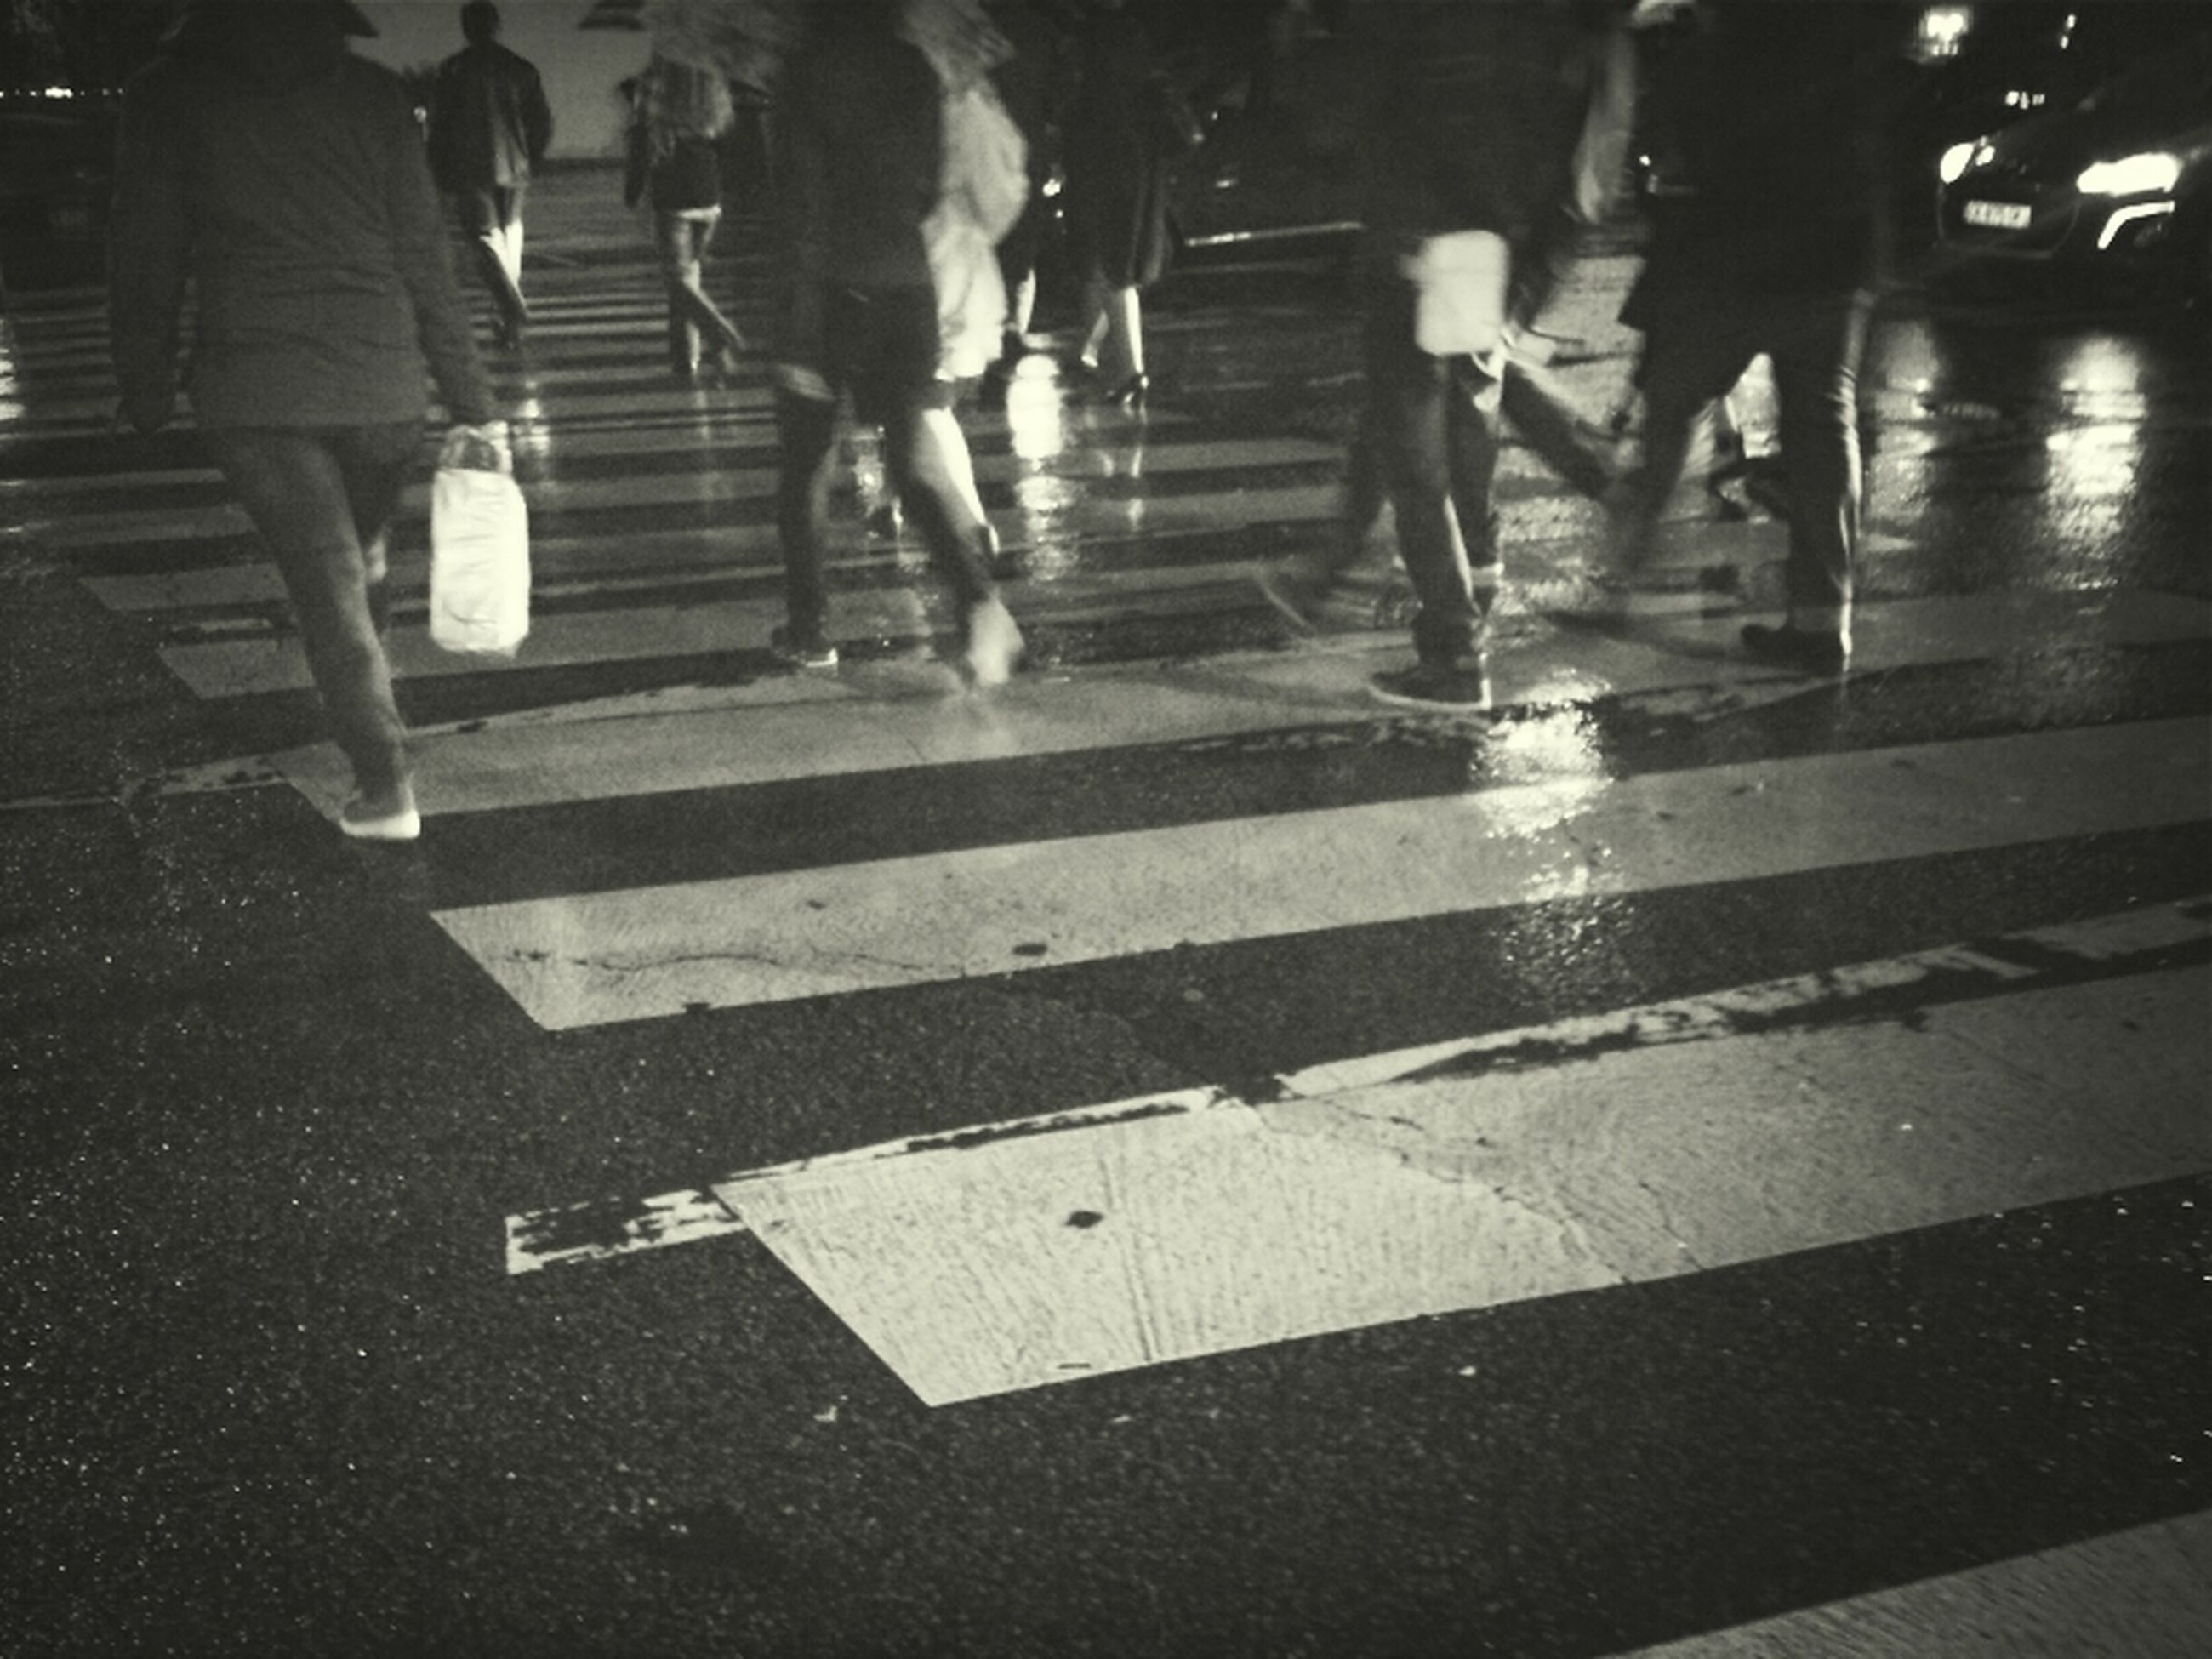 men, walking, lifestyles, street, low section, person, city life, leisure activity, zebra crossing, road marking, shadow, on the move, night, road, high angle view, standing